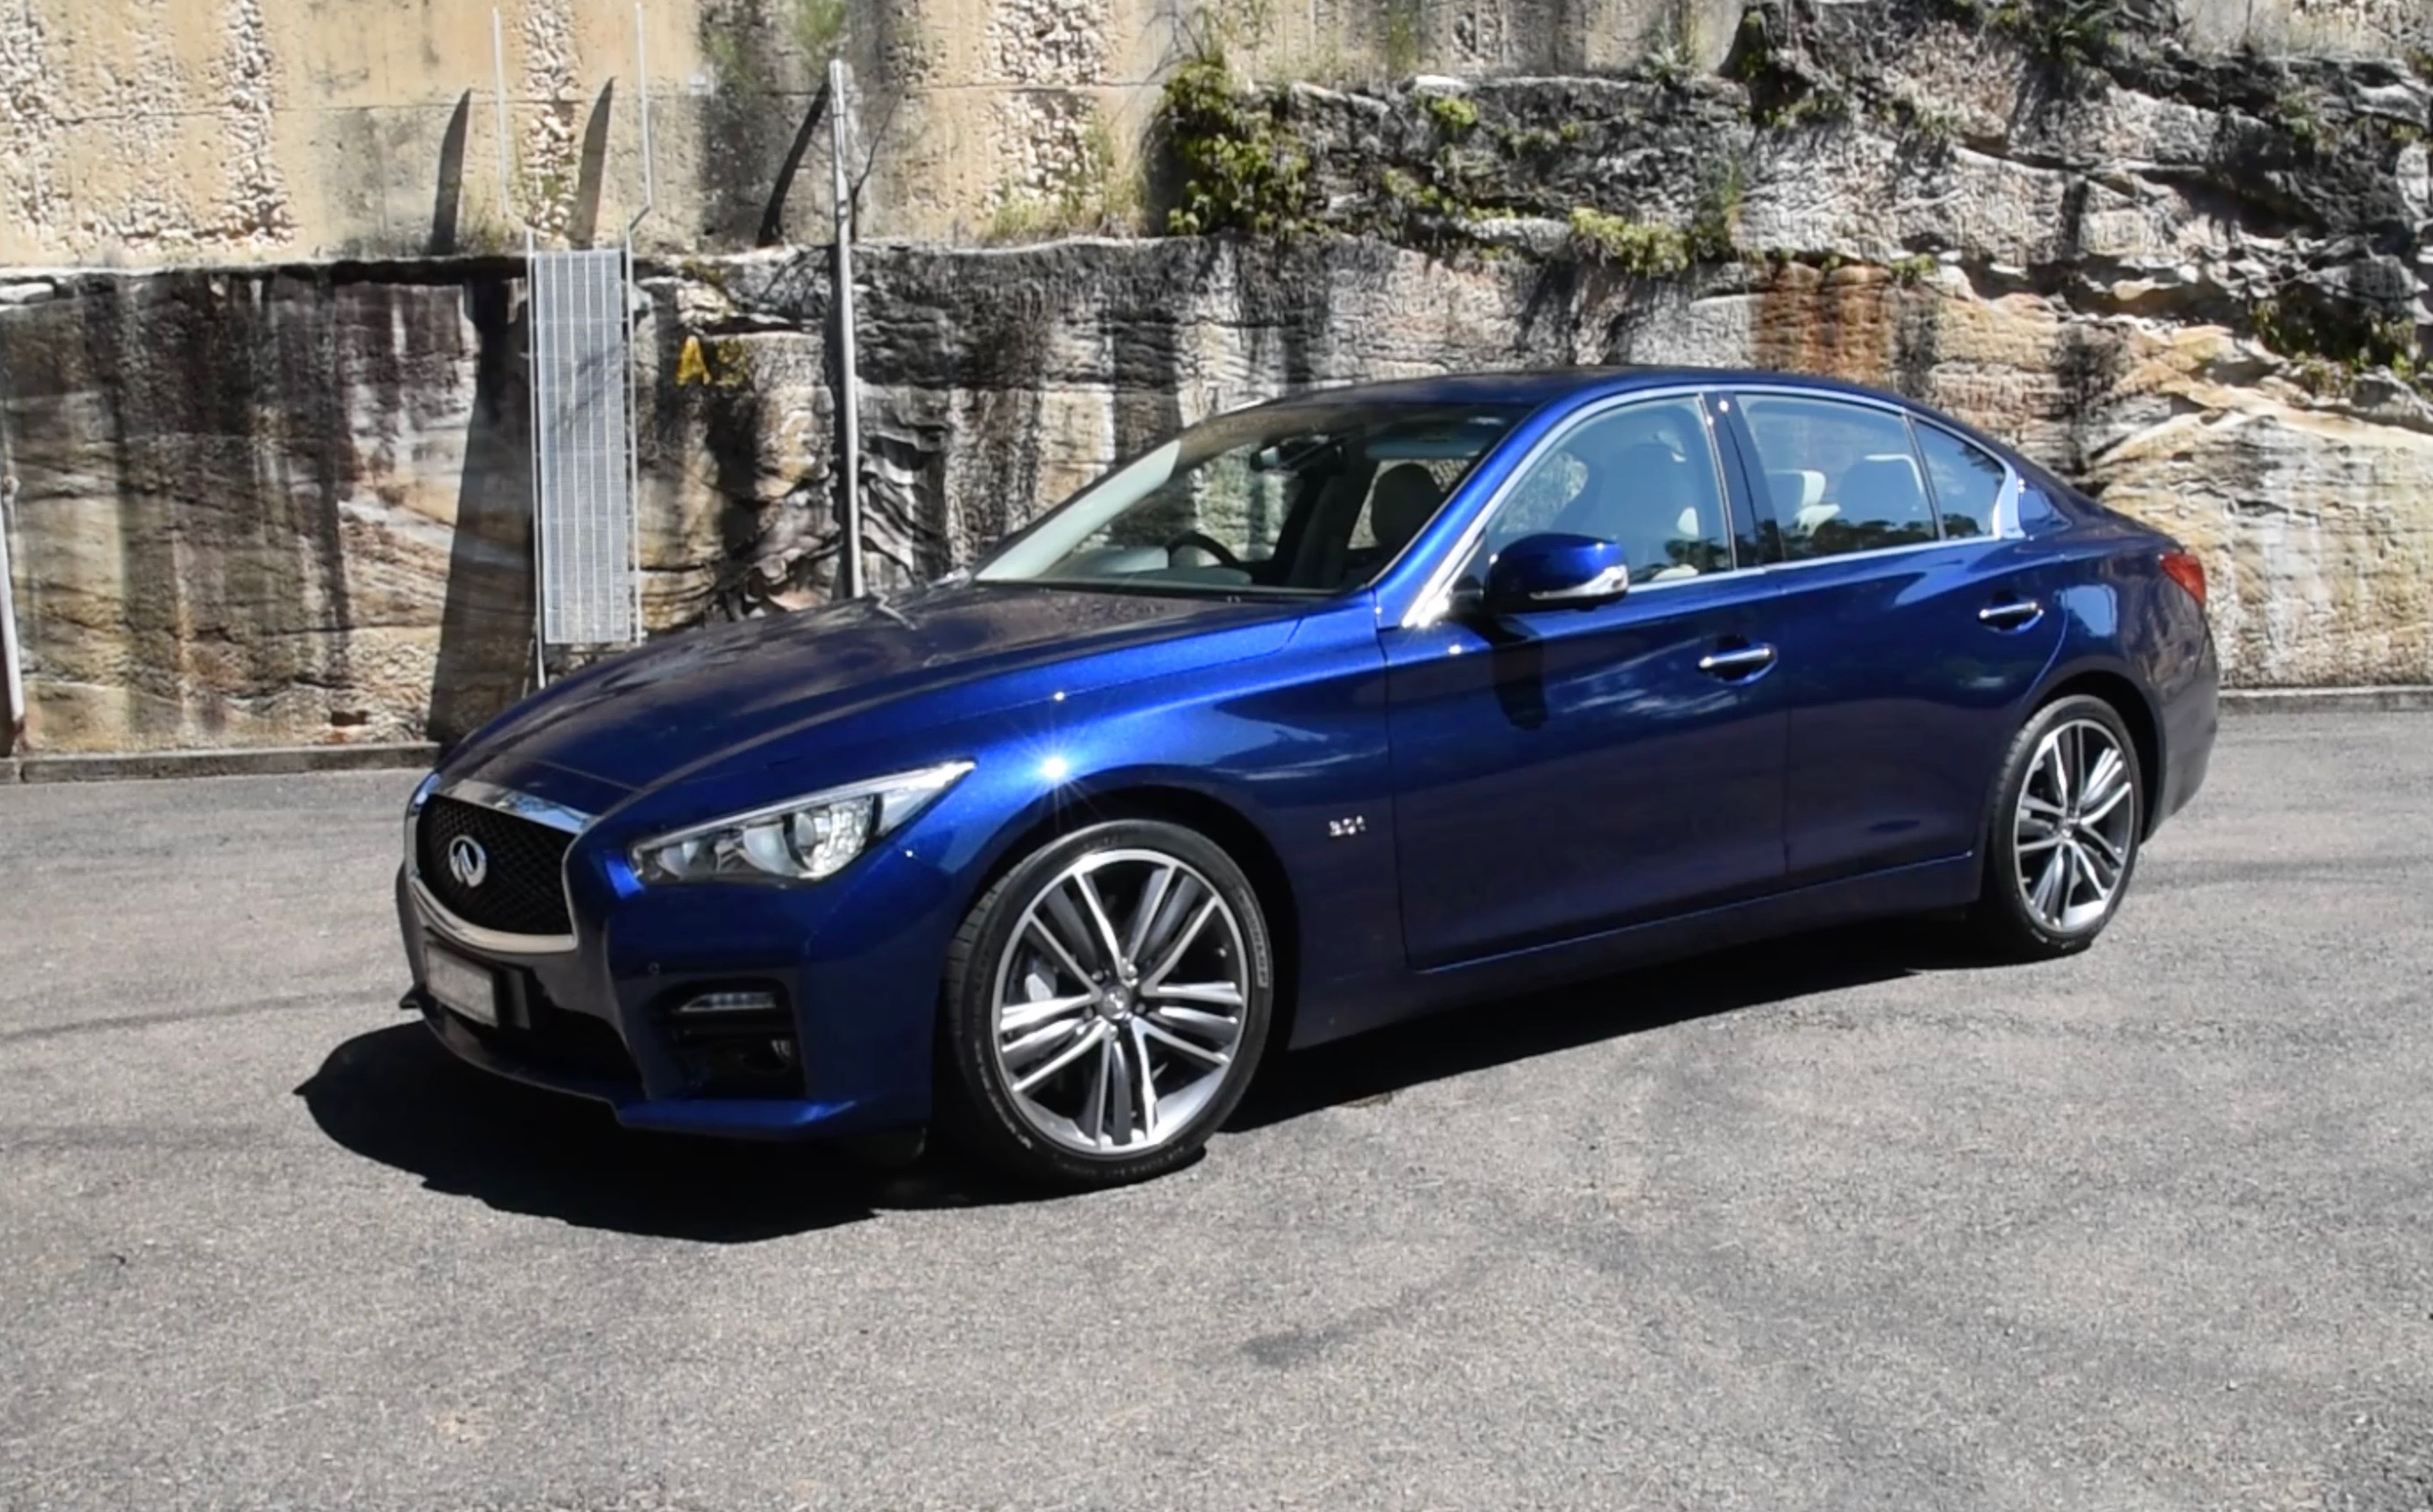 infinity corey price image review all the infiniti power red sport about first lewis drive